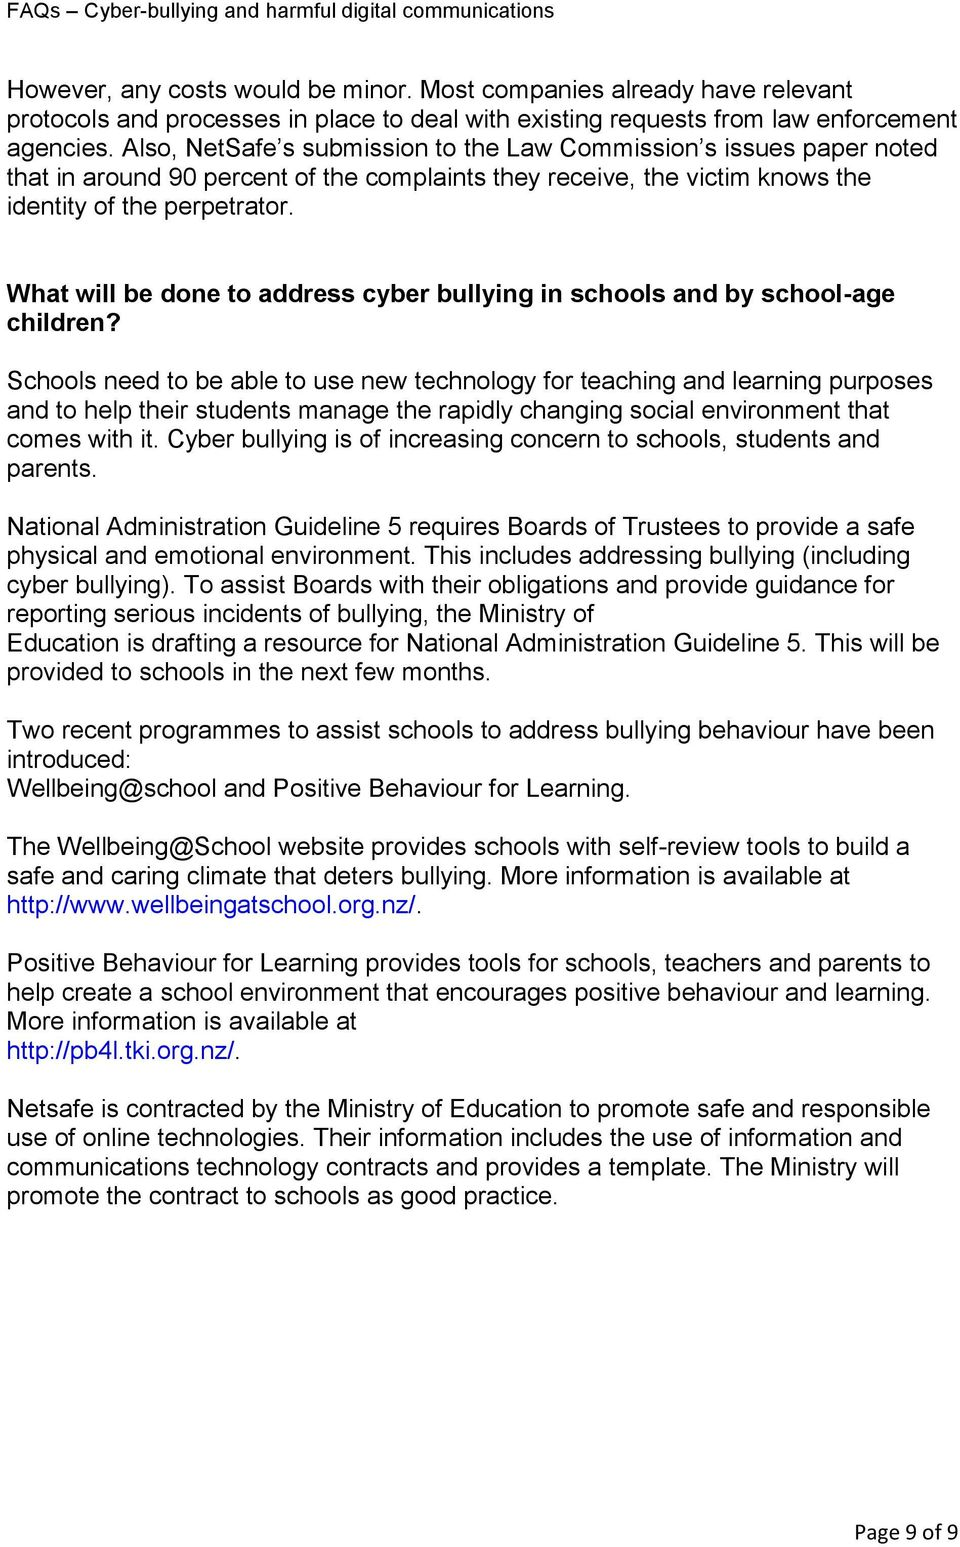 What will be done to address cyber bullying in schools and by school-age children?